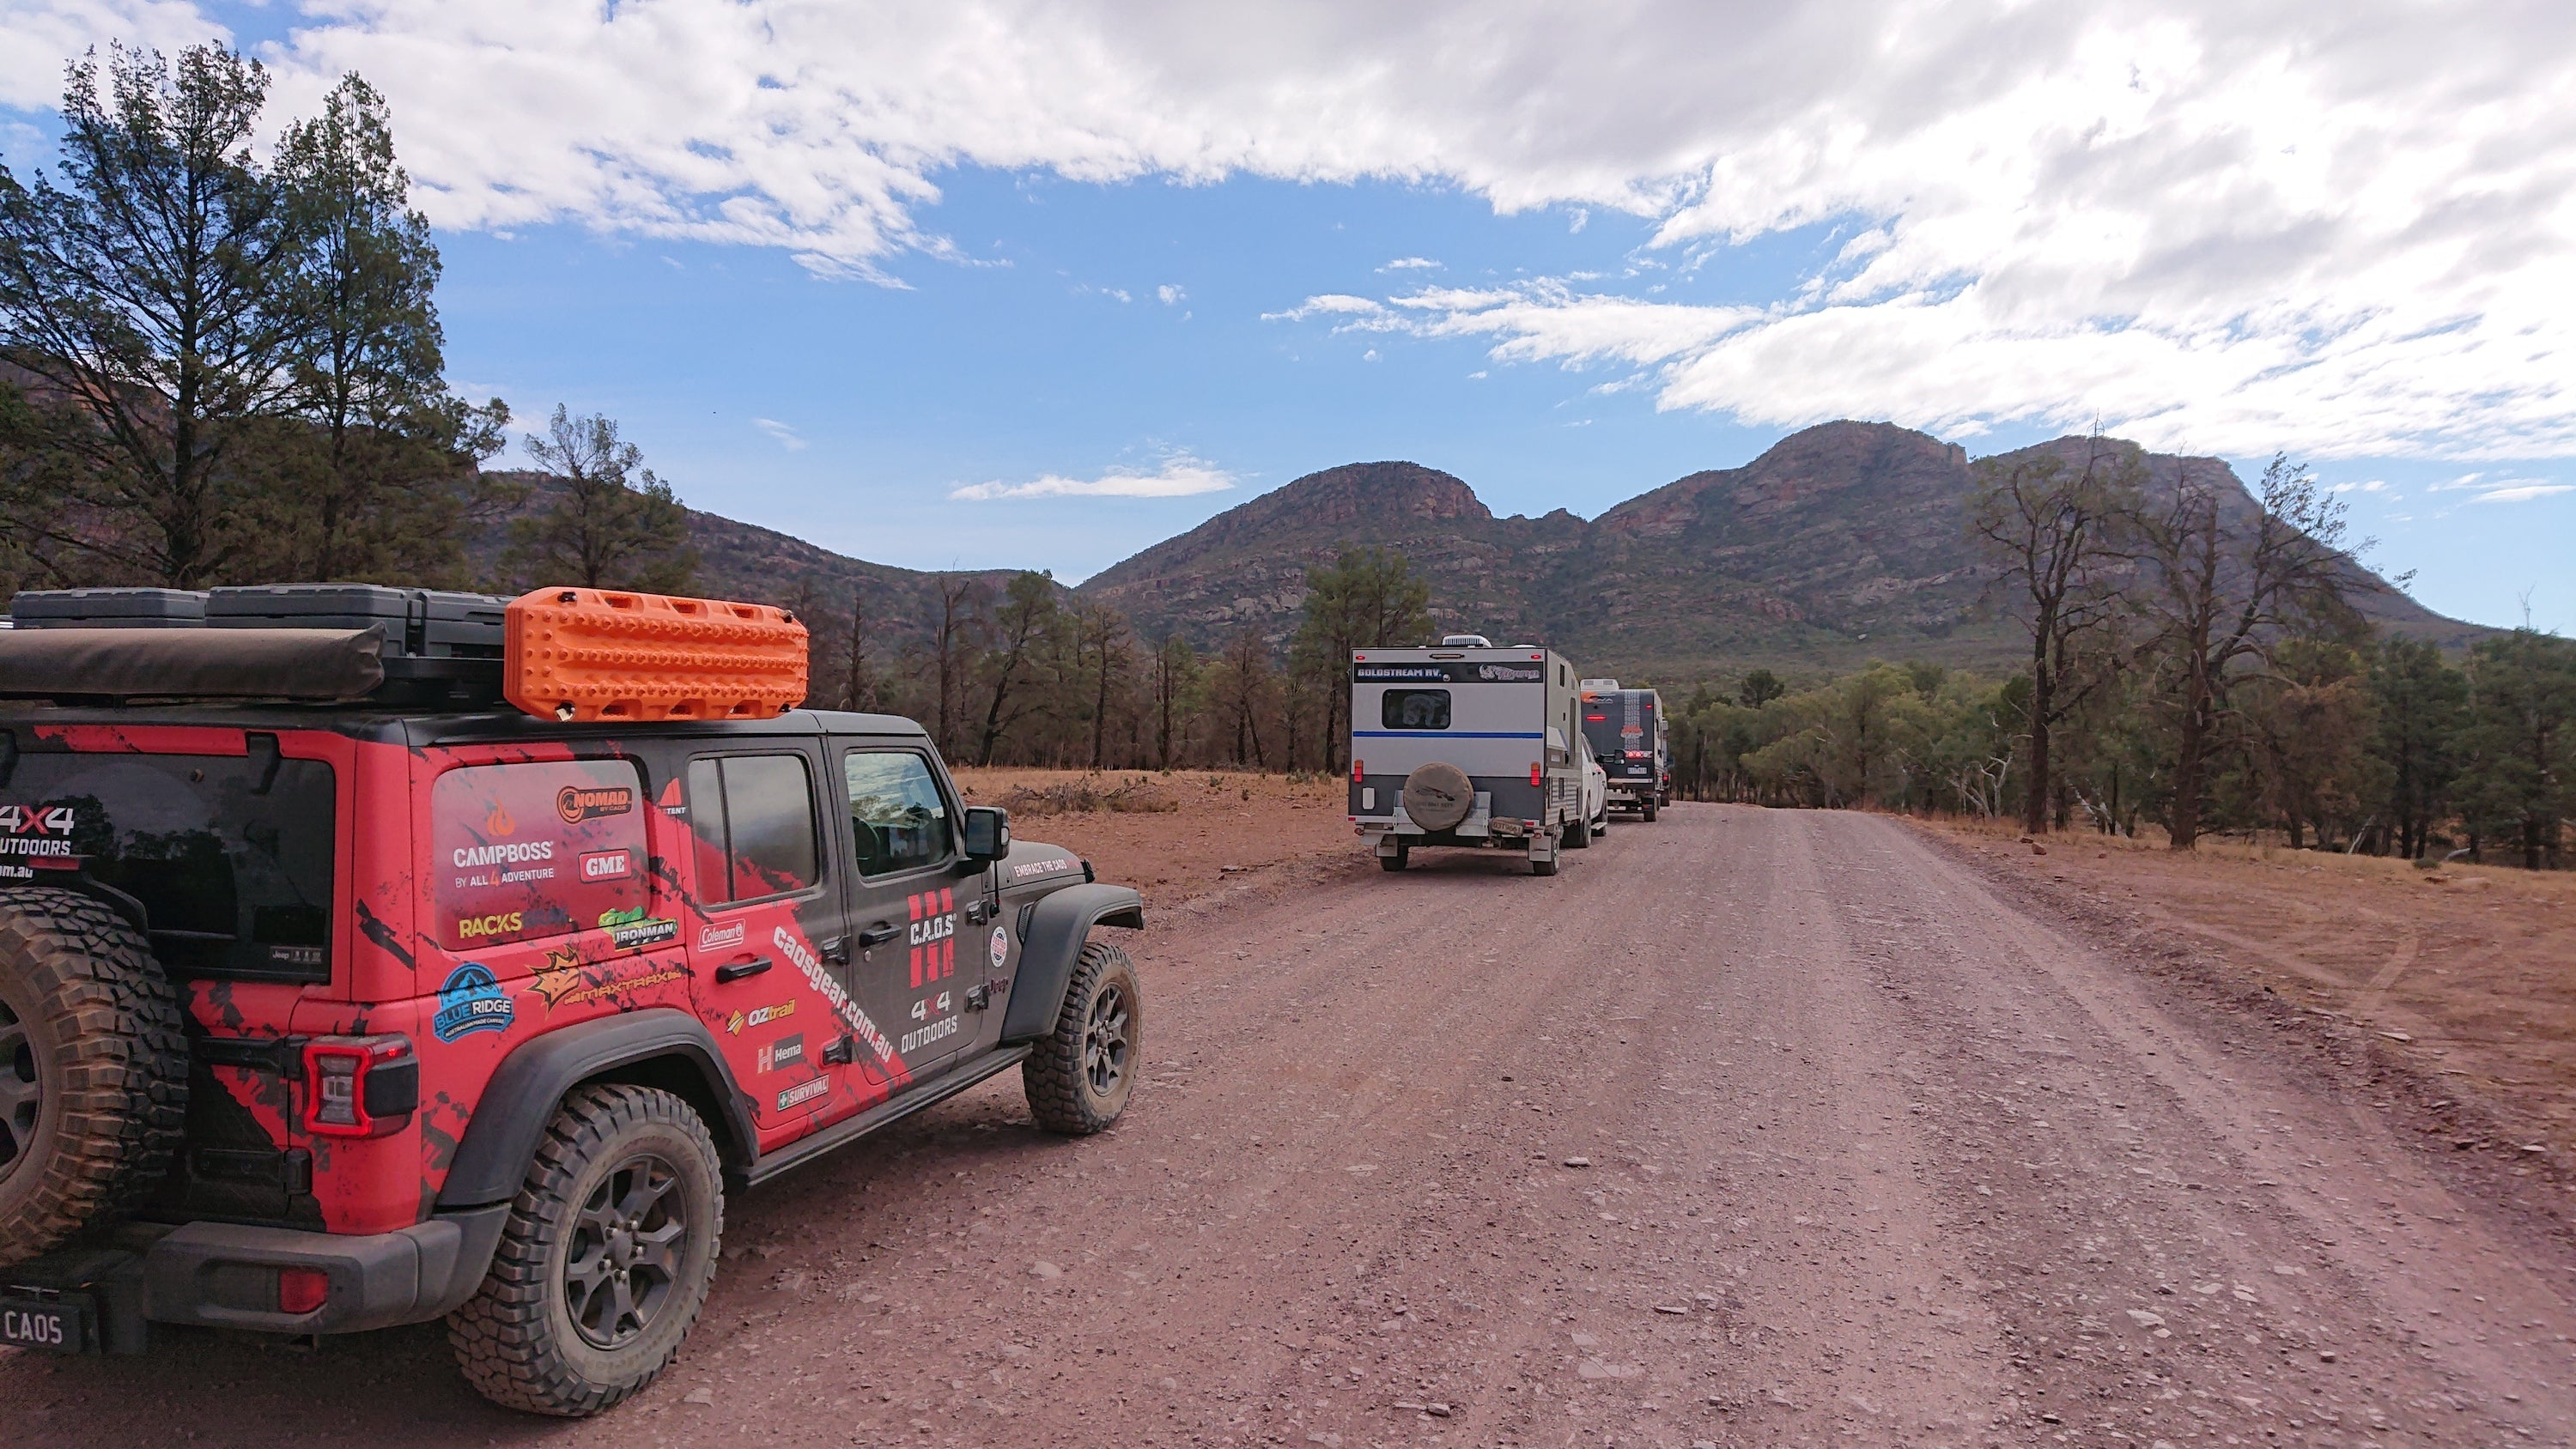 CAOS 4x4 On The Road To Wilpena Pound